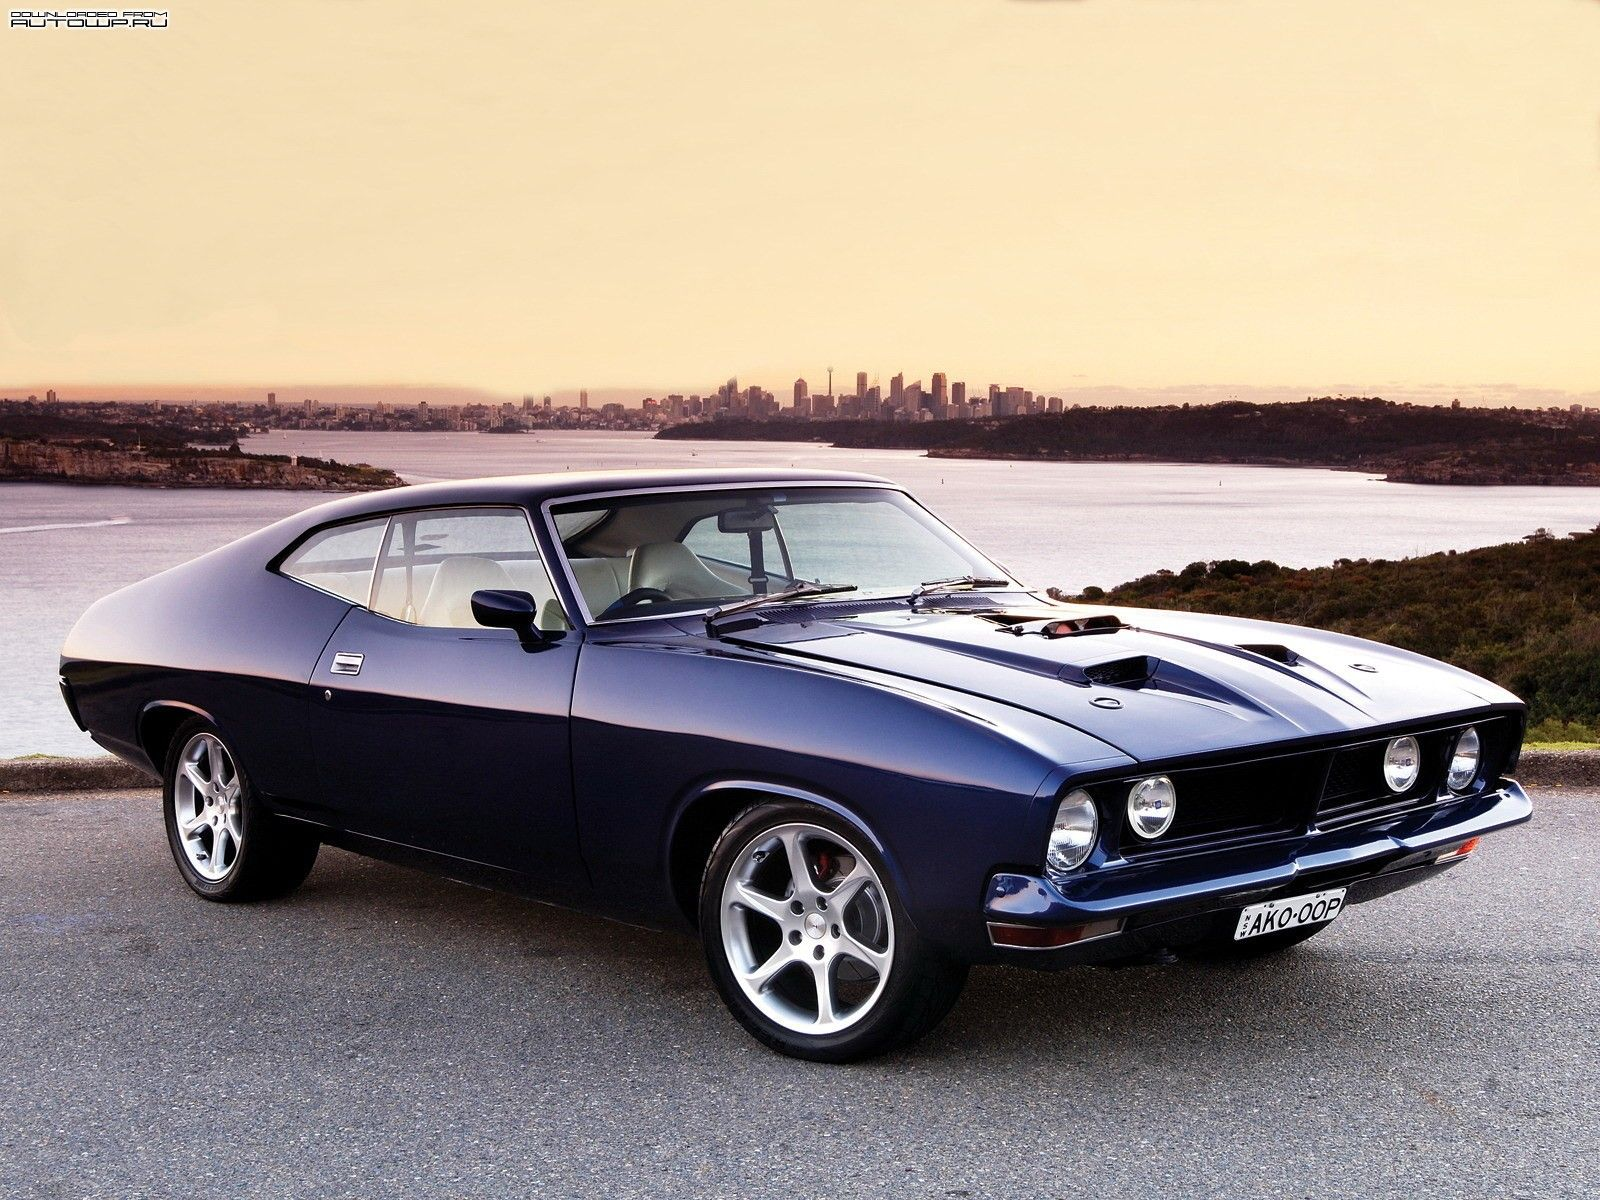 Ford Falcon Aussie Muscle Car Ford Australia / 1600x1200 Wallpaper ...